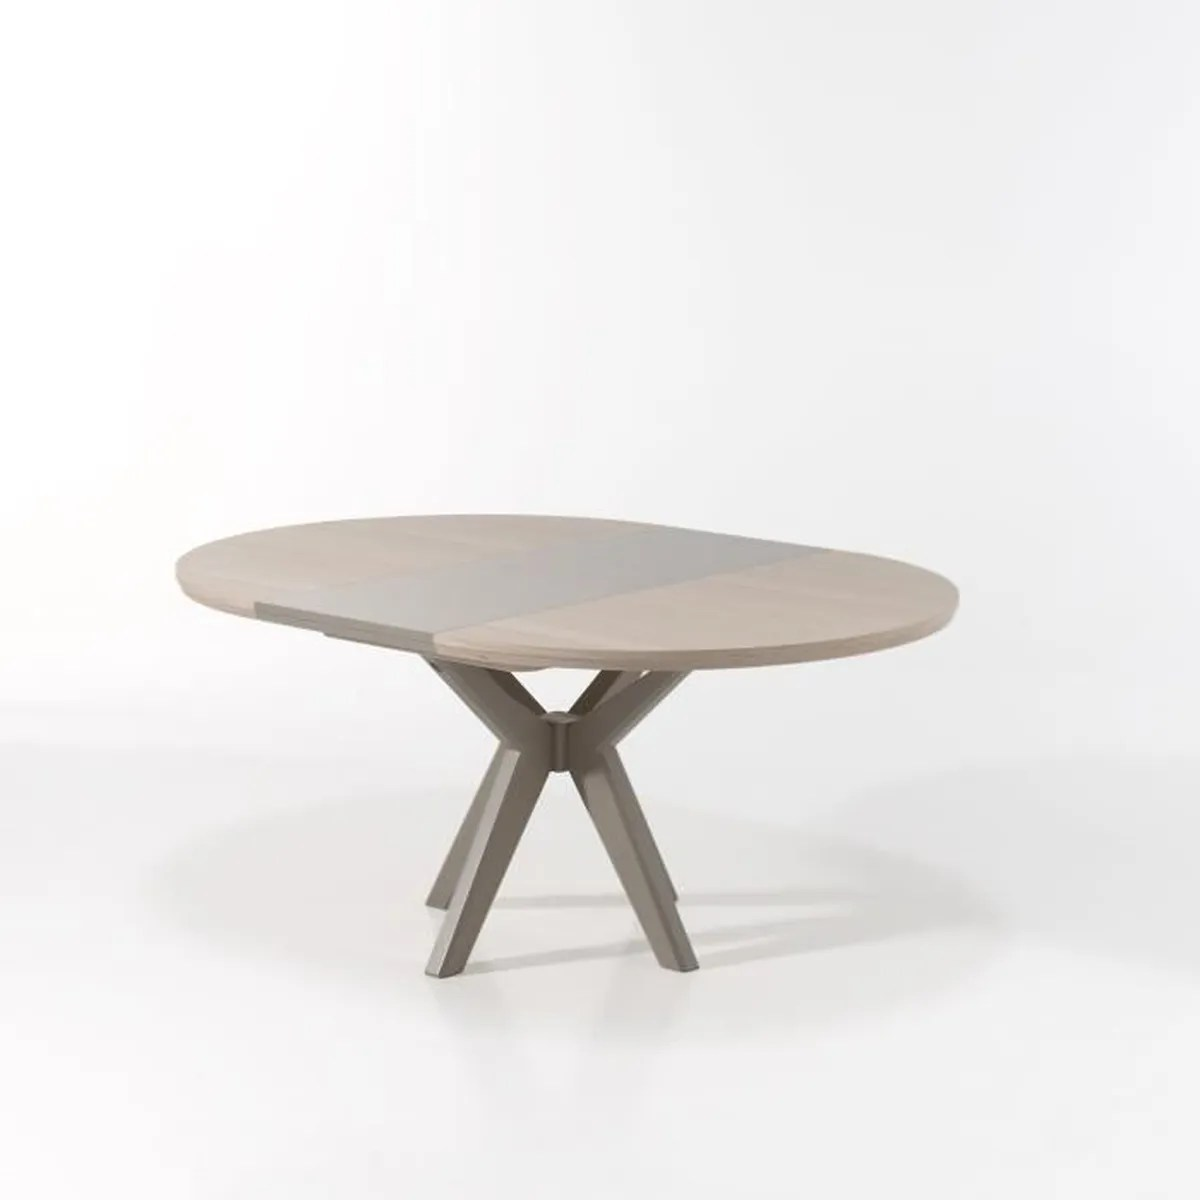 Table Ronde Allonges Table Ronde Avec Allonge Portefeuille Stonegrey Achat Vente